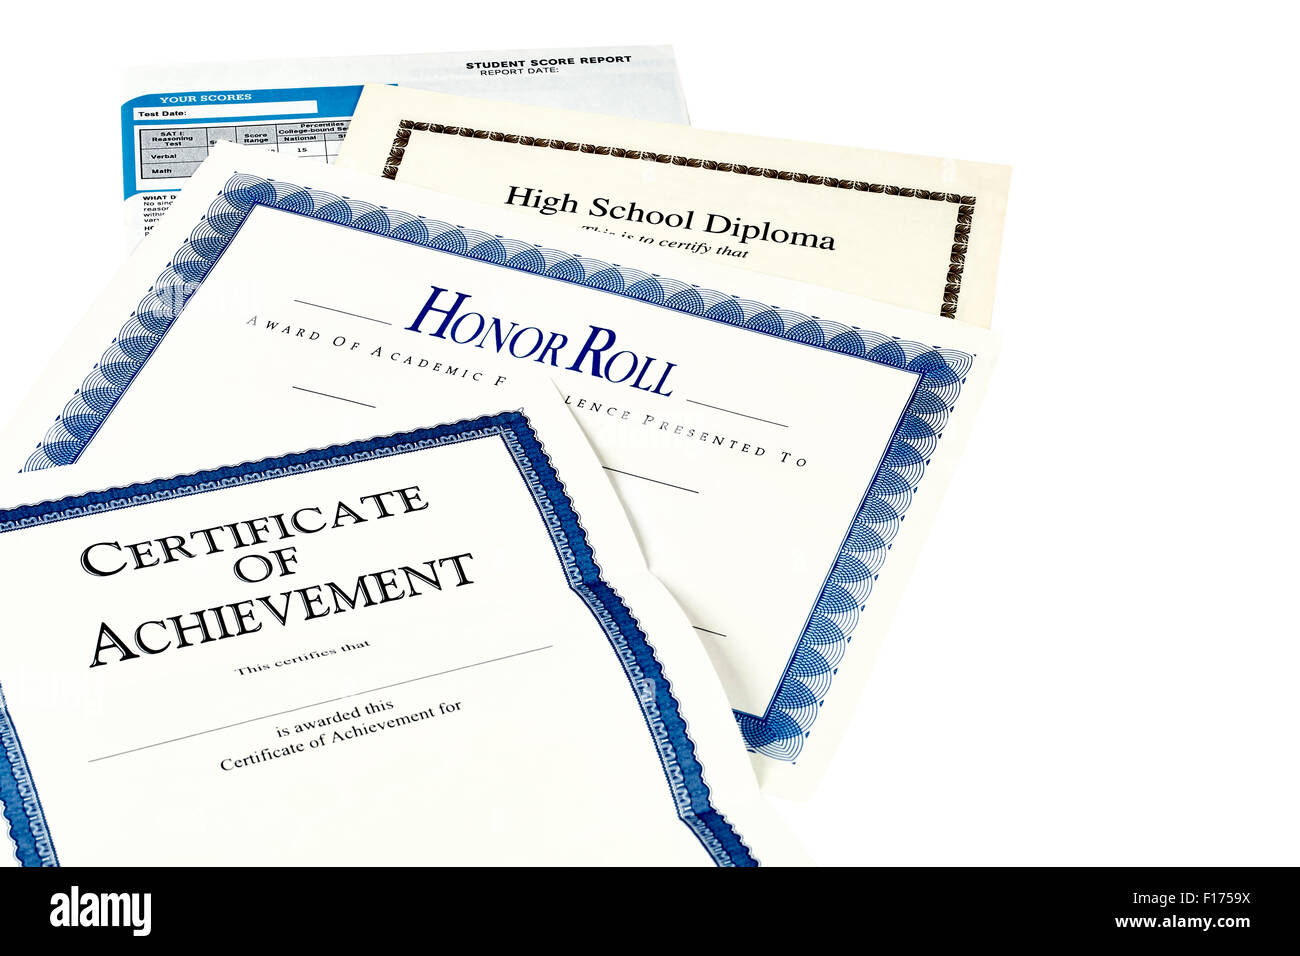 Education documents including SAT report, high school diploma, honor roll recognition, commencemnent program and - Stock Image